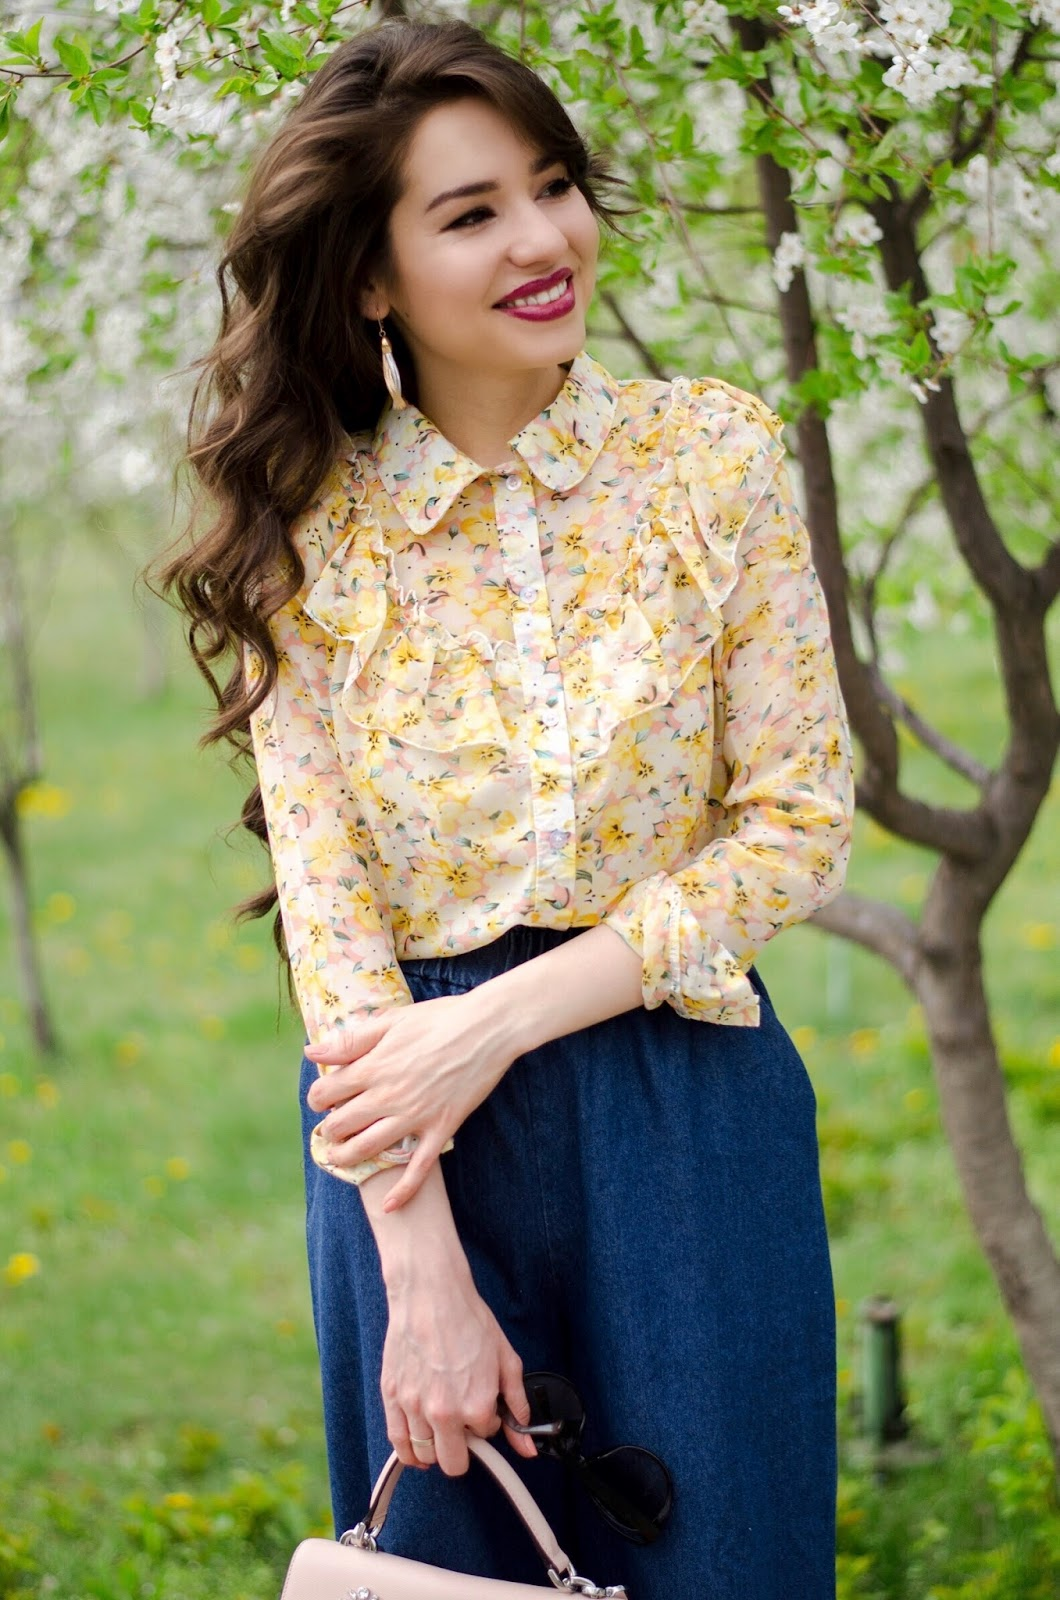 Image%2B20.04.17%2Bat%2B14.54 - YELLOW PRINTED BLOUSE